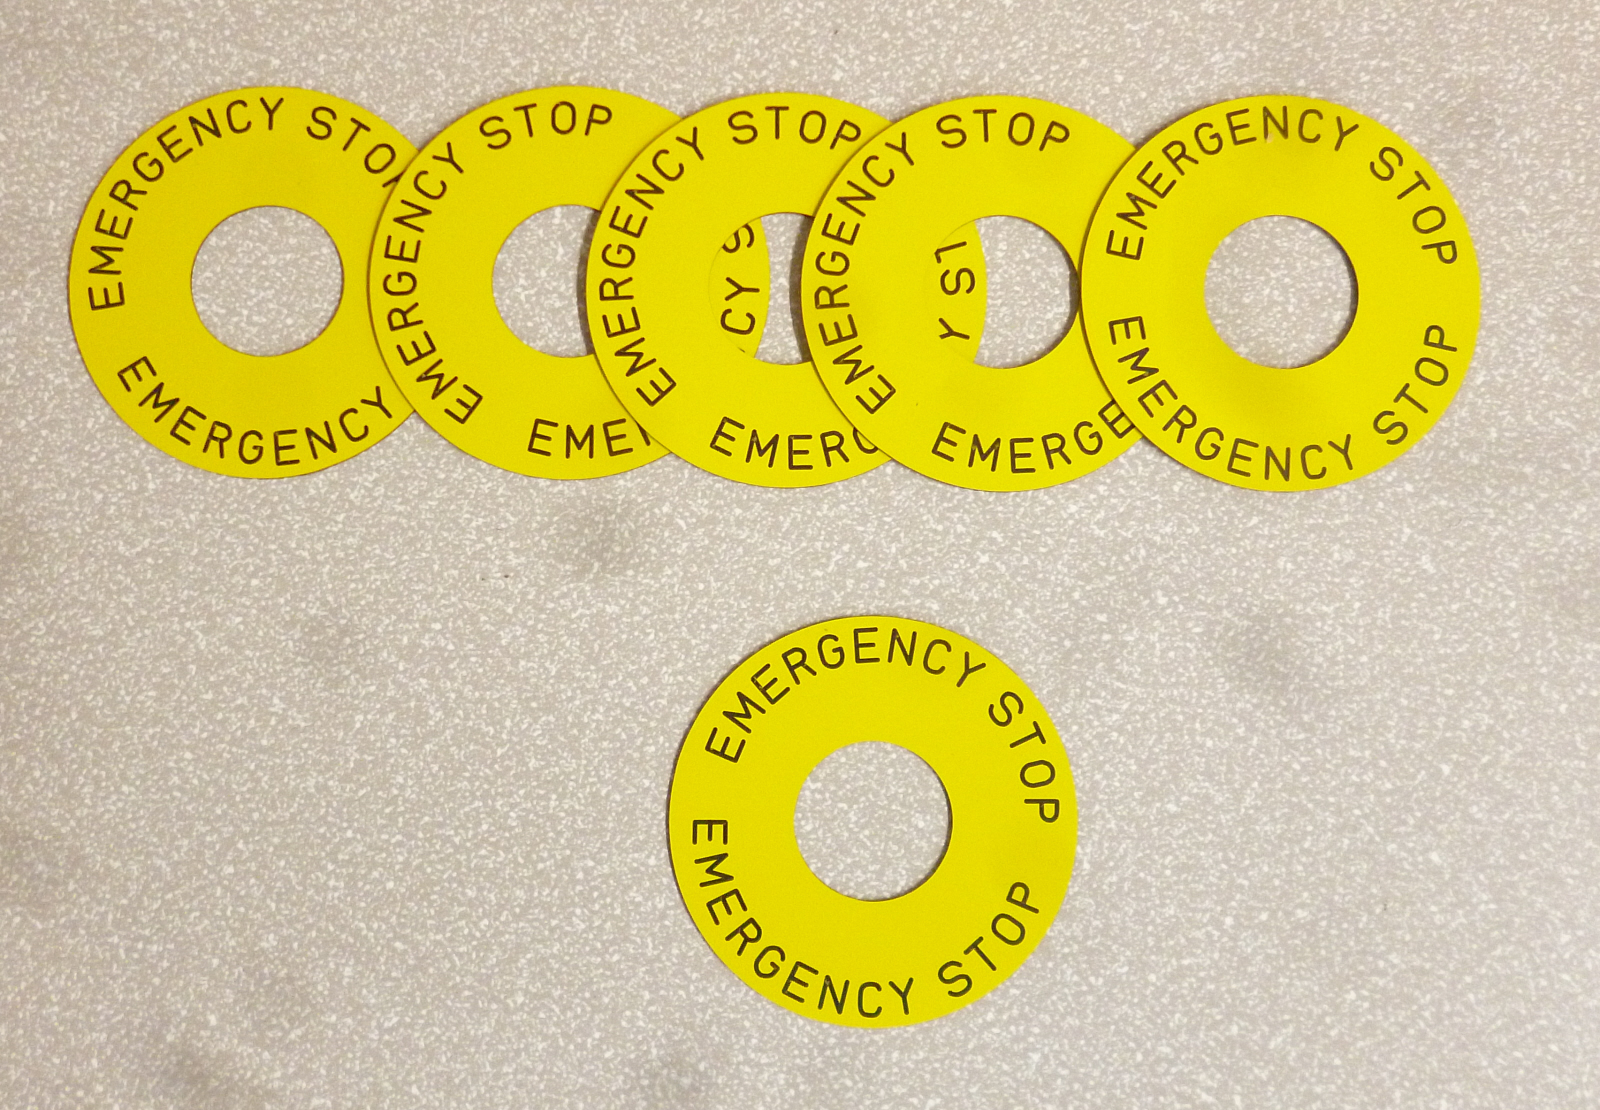 Legend Plates and Emergency Stop Discs